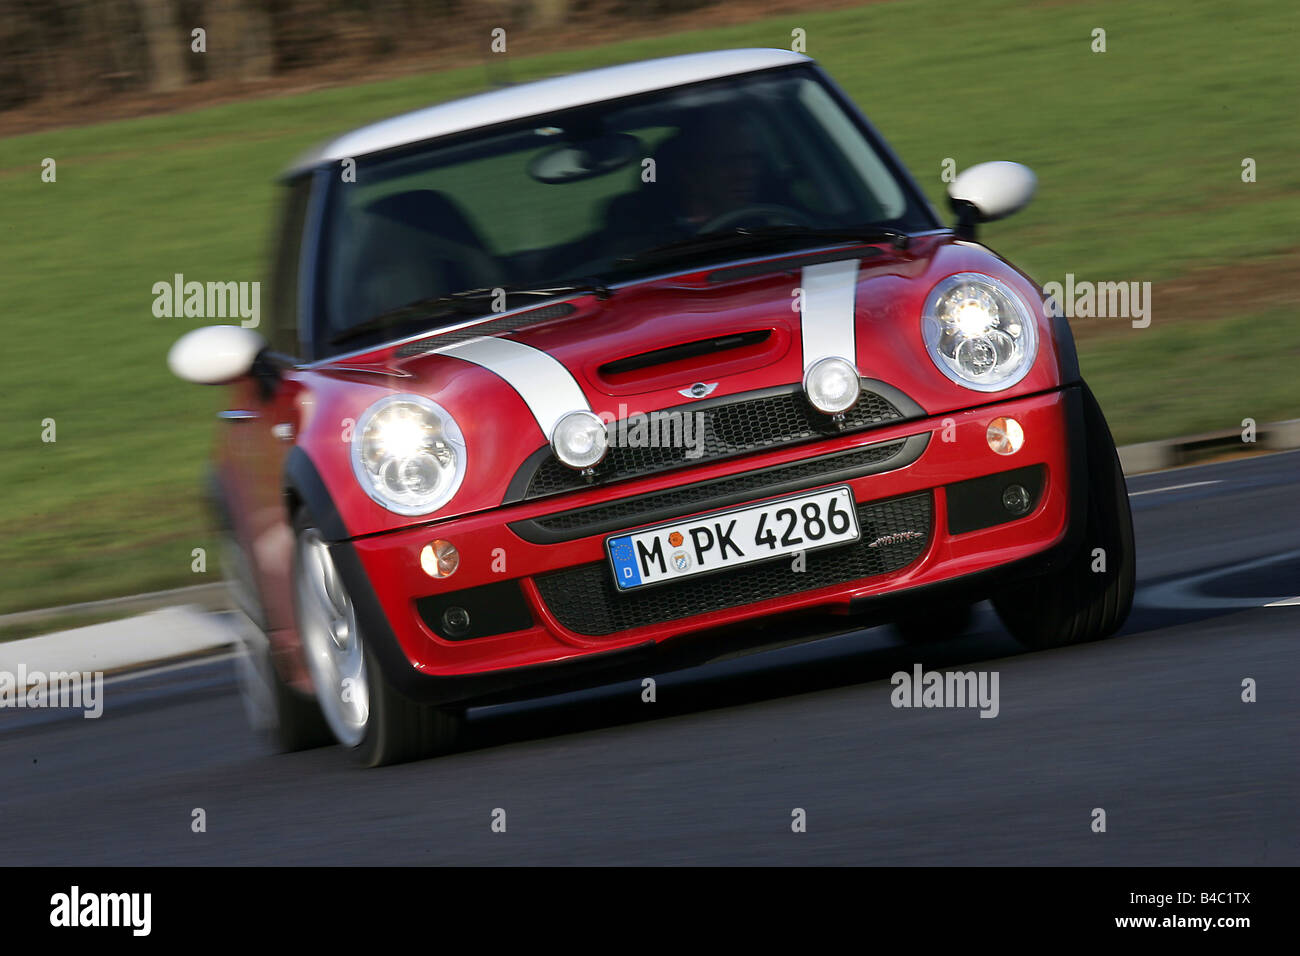 Car, Mini Cooper S Works, Model Year 2004-, Miniapprox.s